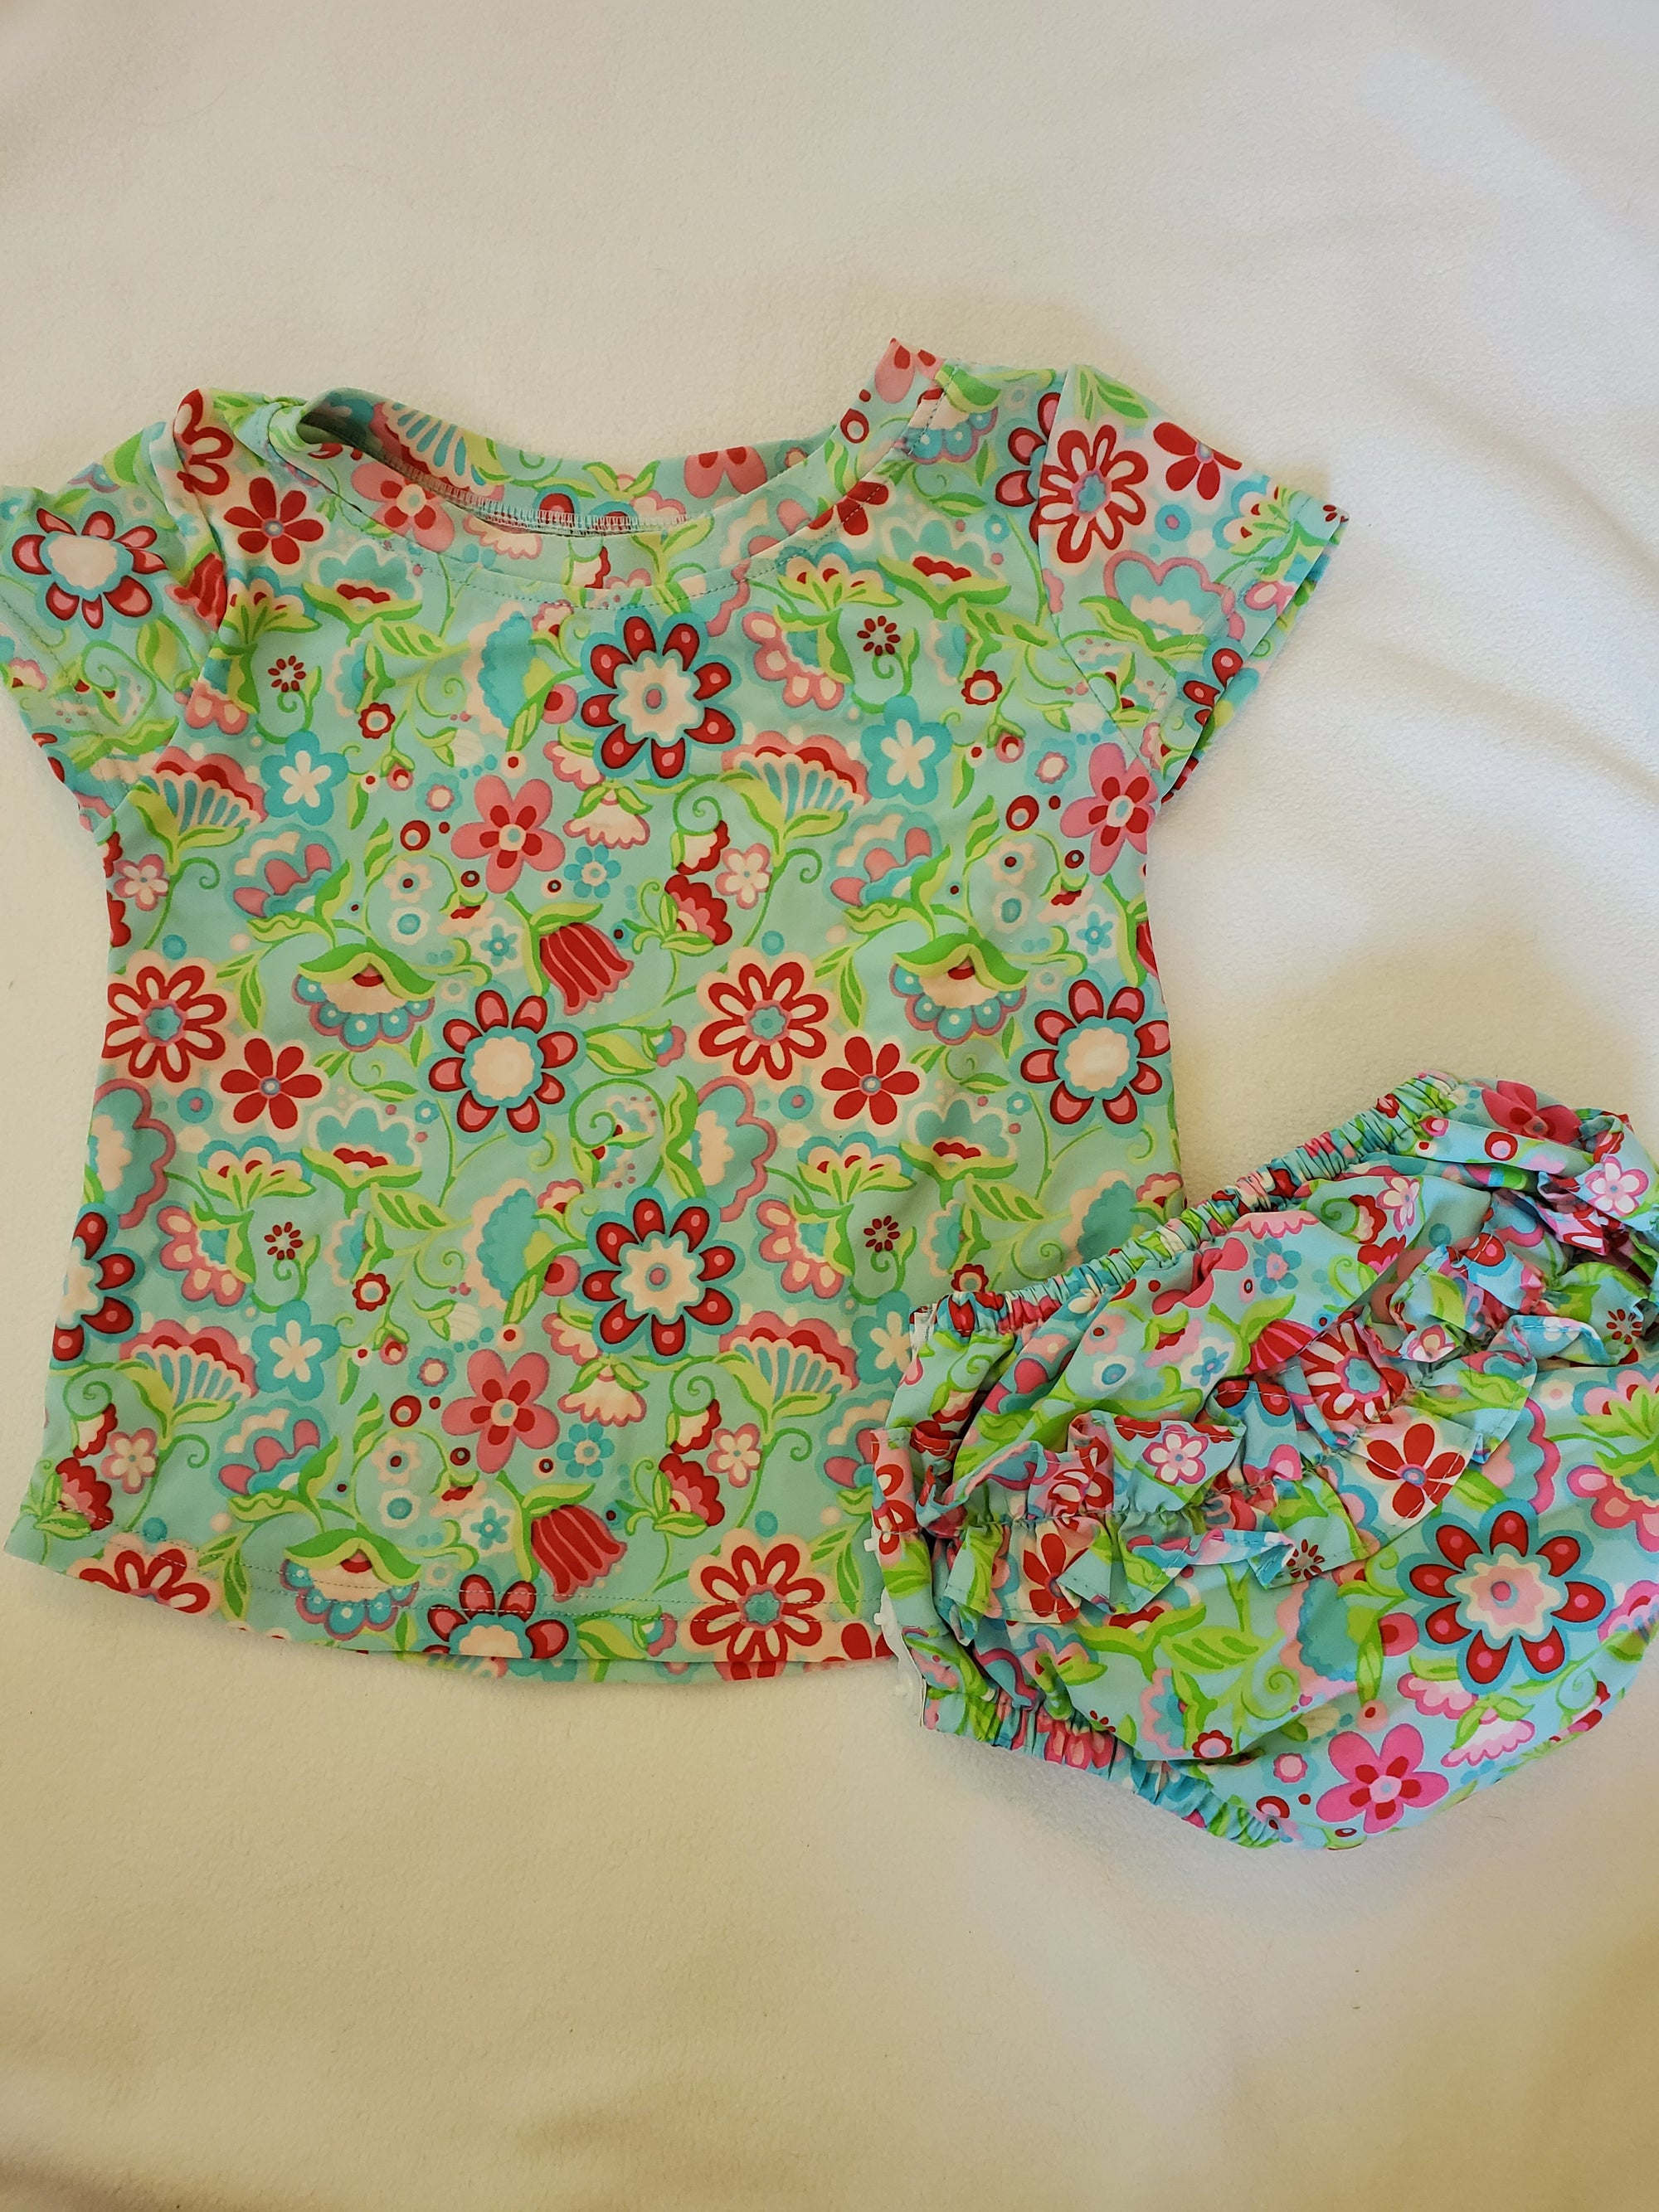 Resale XL 18-24 m iPlay Rashguard & Swim Diaper Aqua/Pink Floral Swimsuit Set